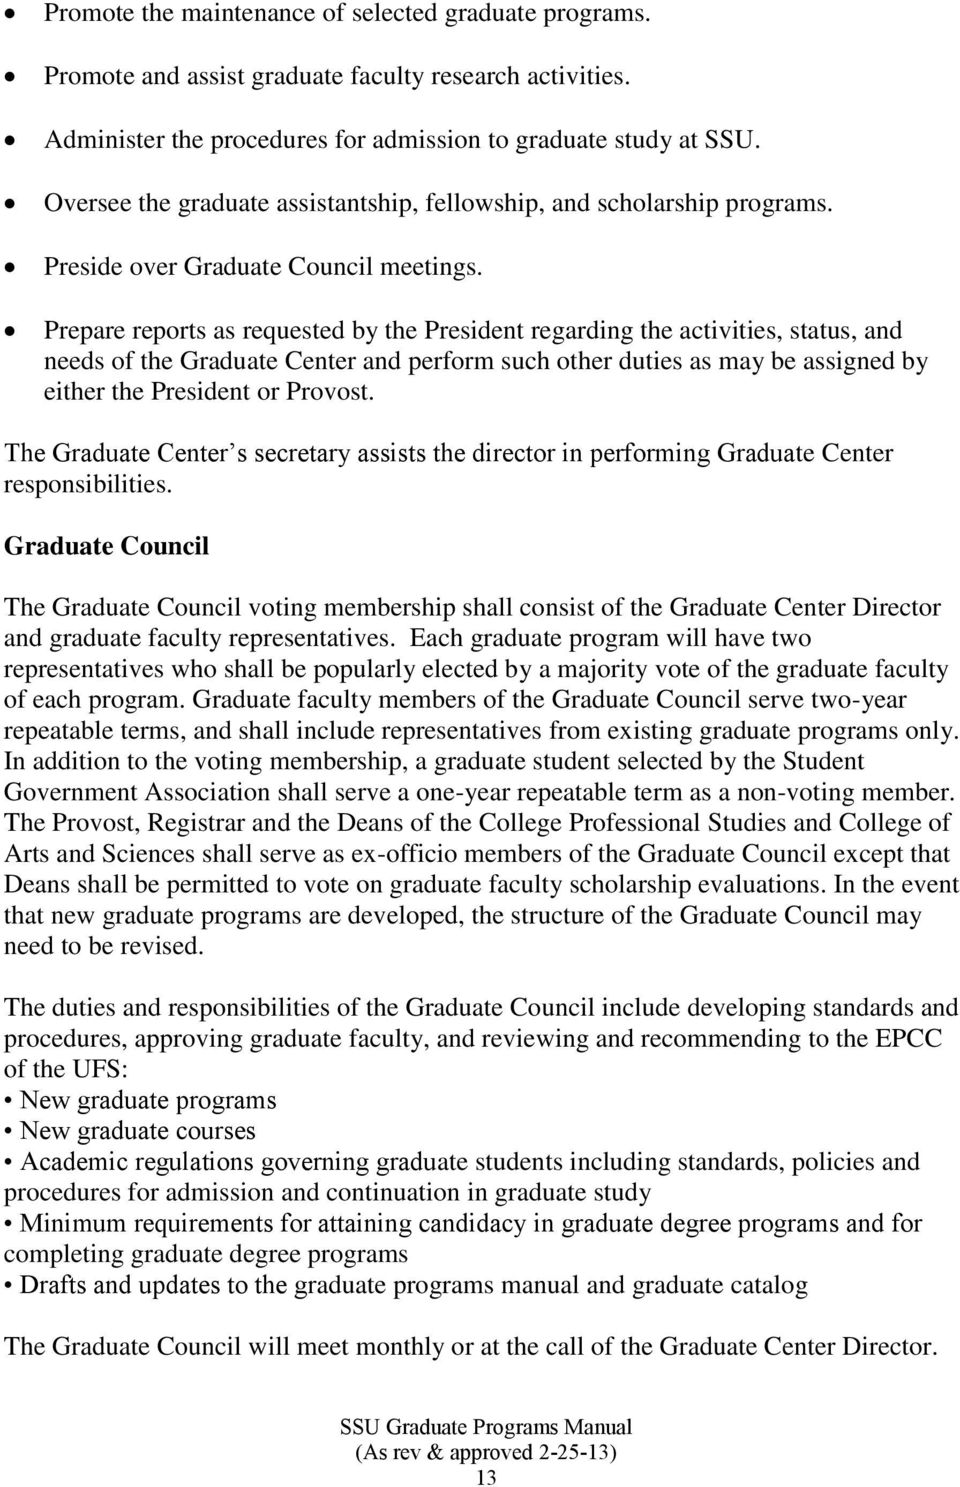 Prepare reports as requested by the President regarding the activities, status, and needs of the Graduate Center and perform such other duties as may be assigned by either the President or Provost.